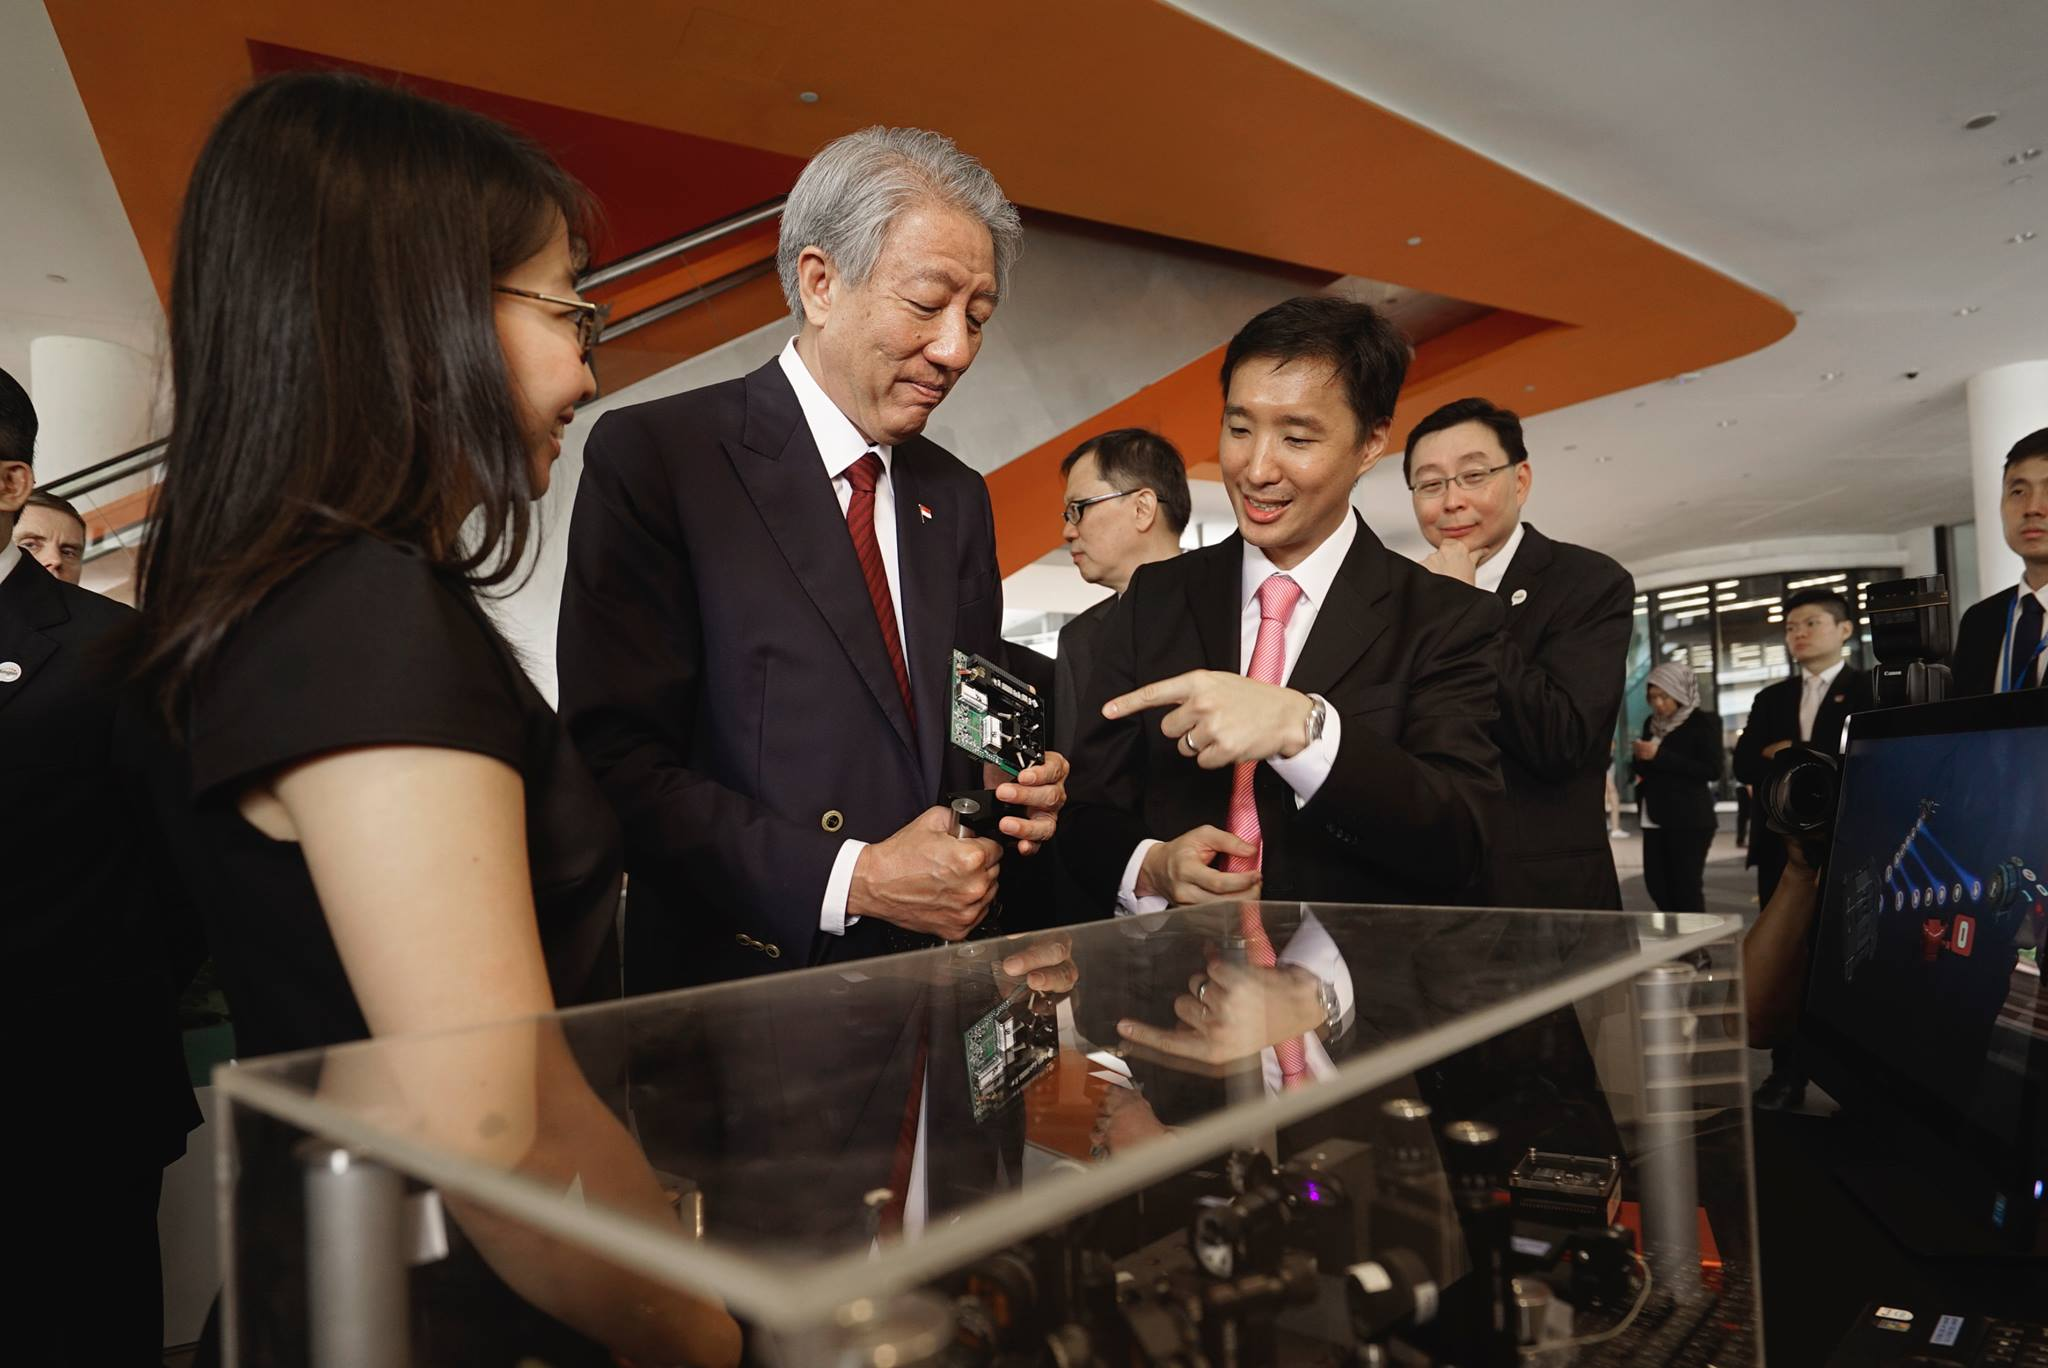 CQT's Alexander Ling presenting a QKD kit to Singapore Deputy Prime Minister Mr Teo Chee Hean